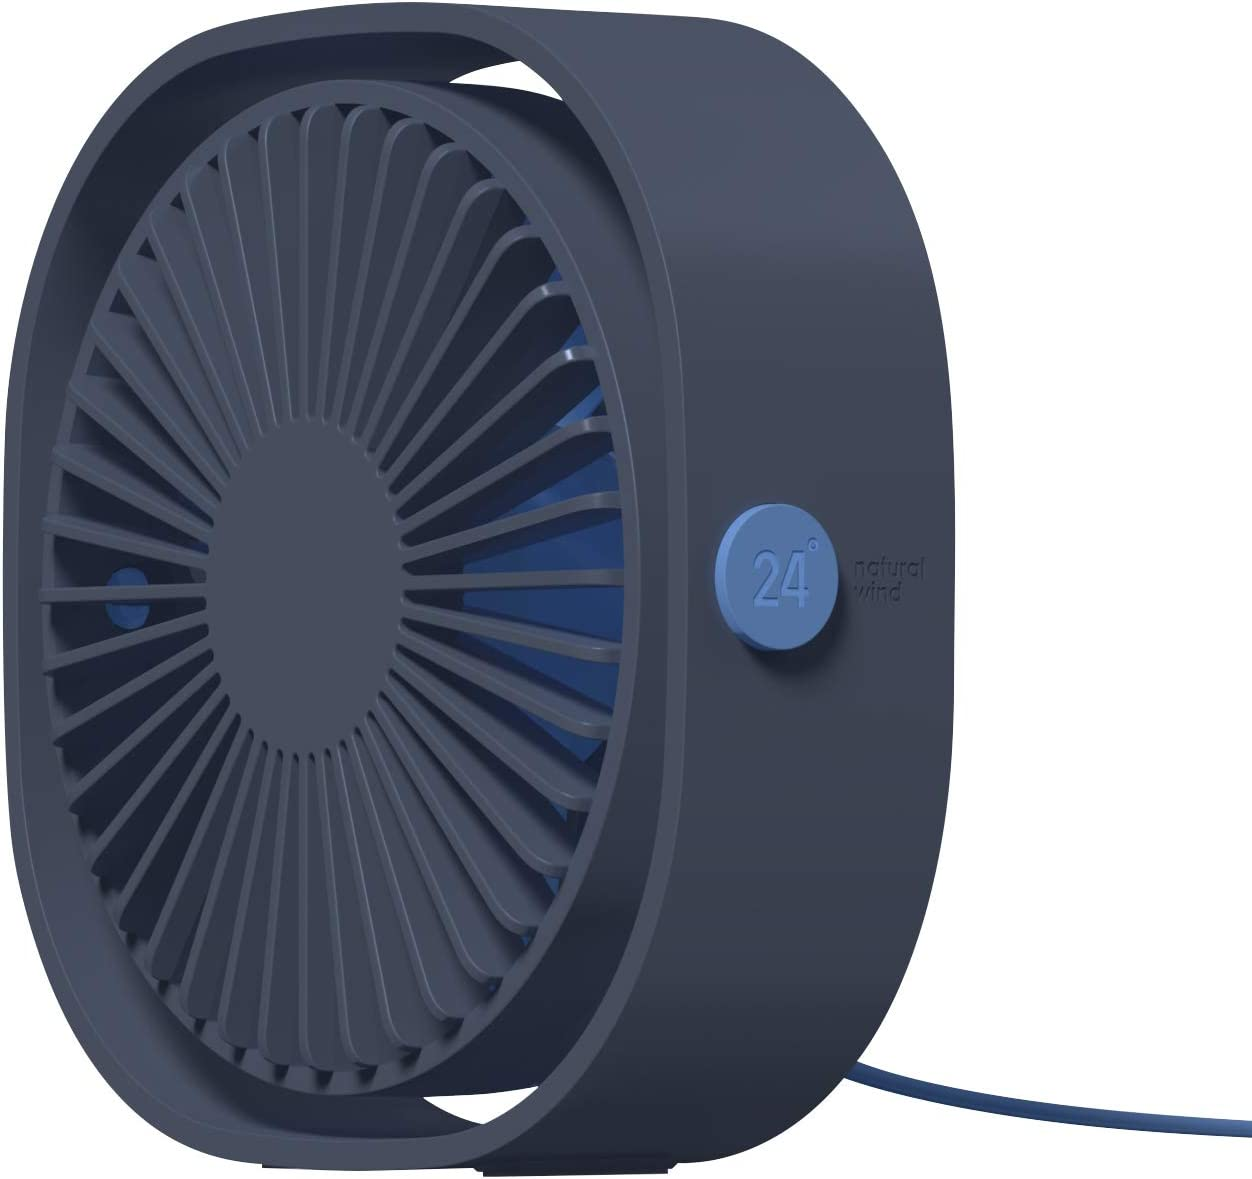 LEL Small USB Desk Fan for office mini USB Powered Table Fan with 360 Rotation 3 Speeds Adjustable (Blue)